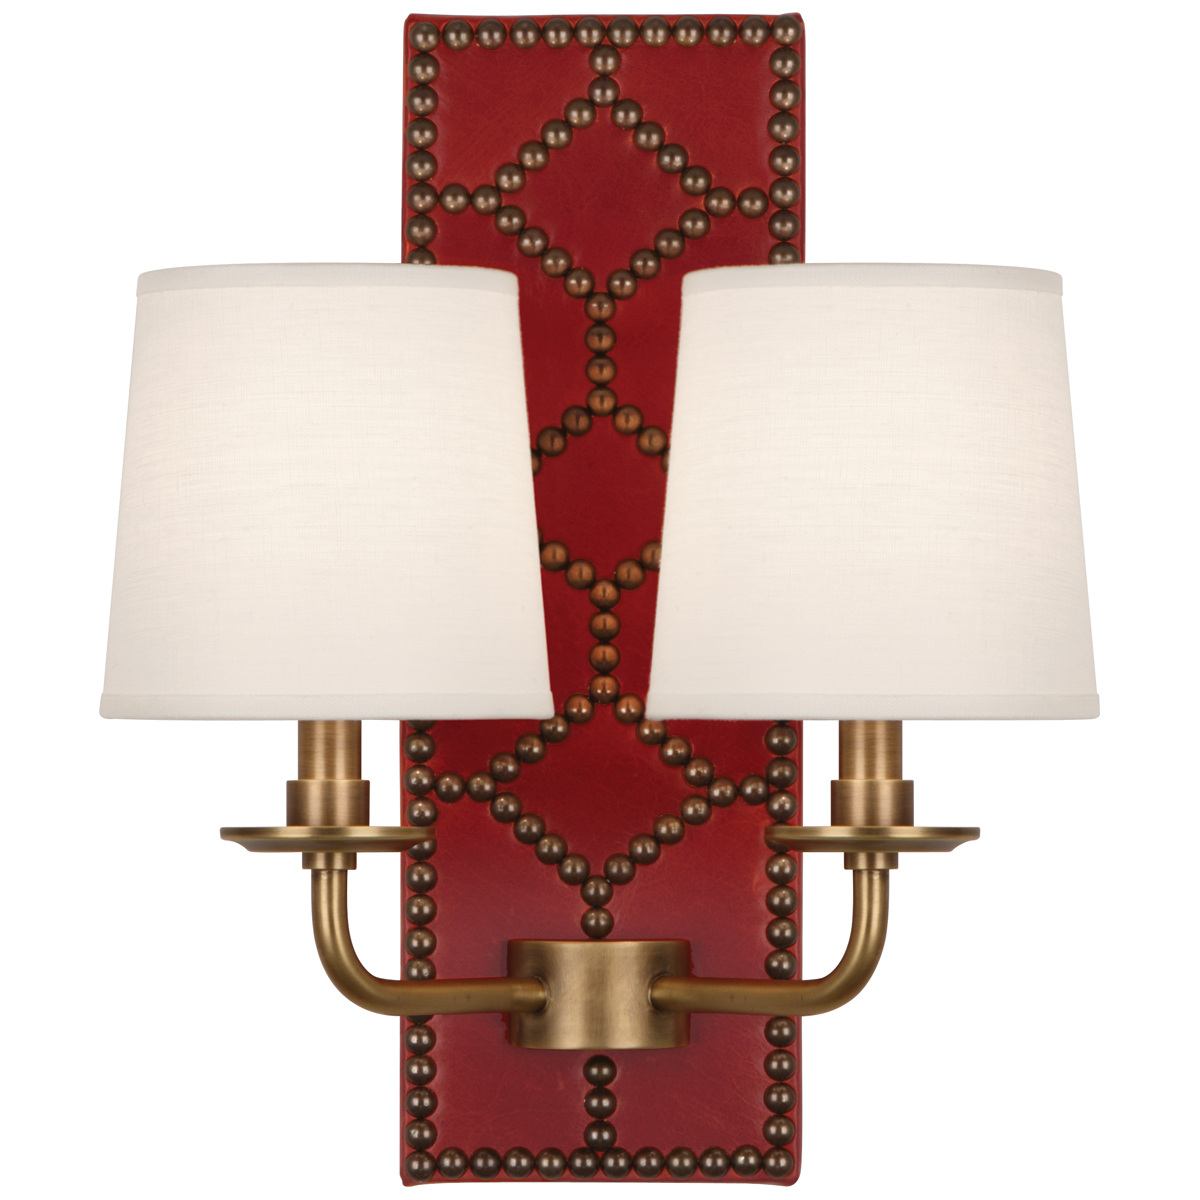 Williamsburg Lightfoot Wall Sconce Style #1031